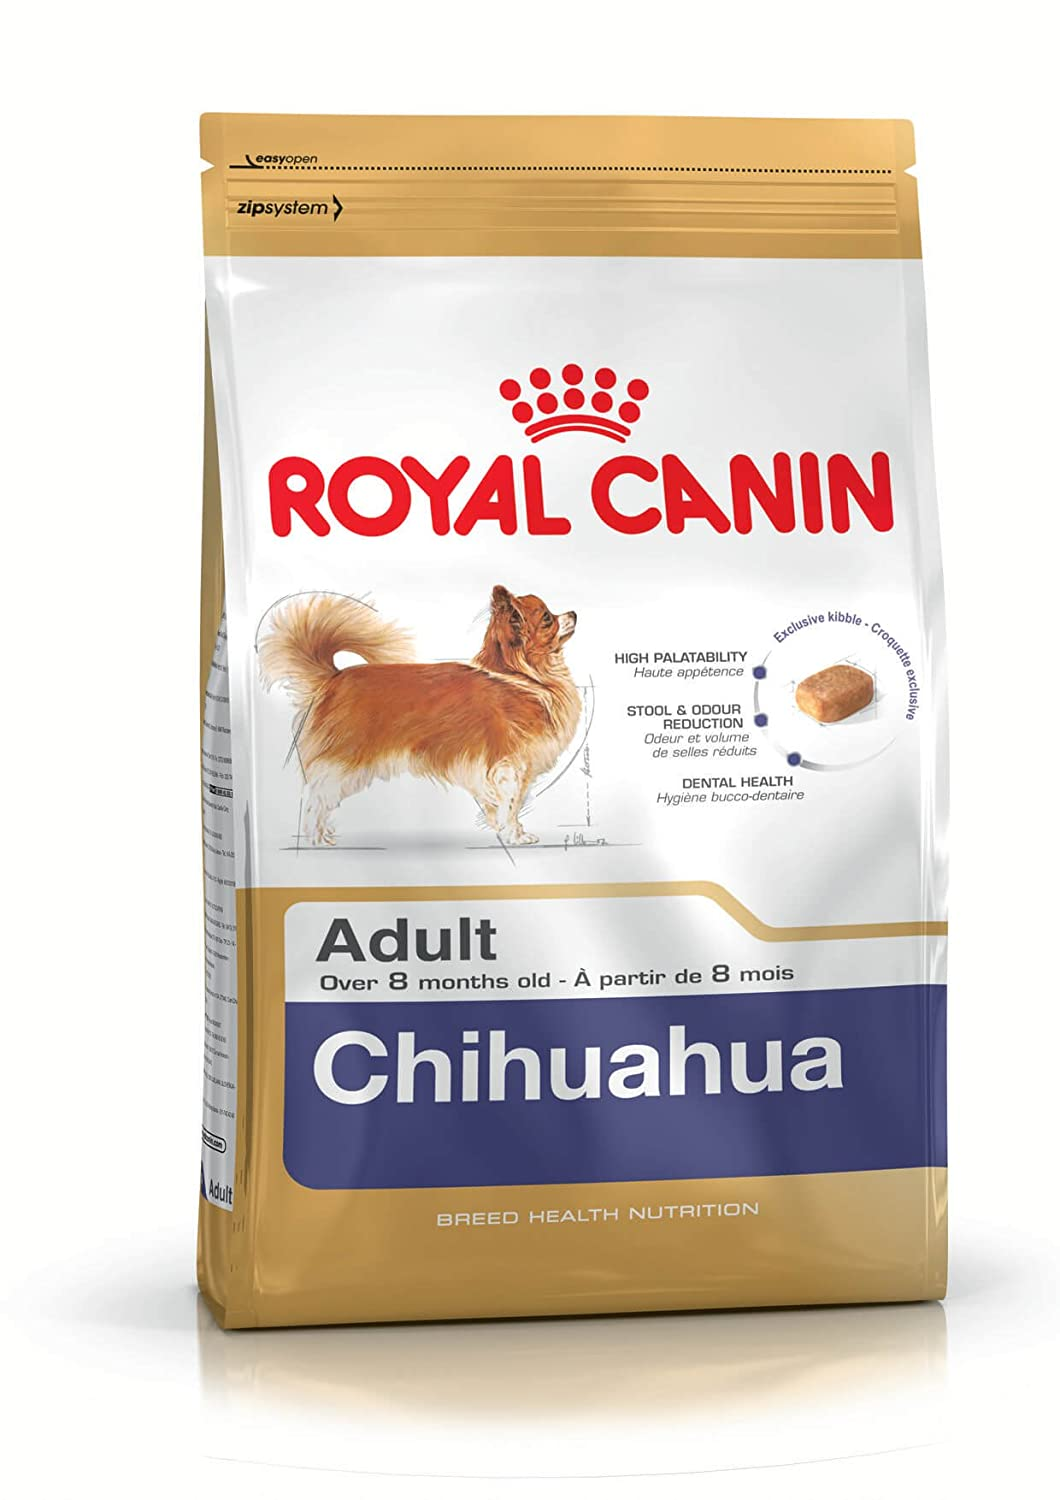 Royal Canin Breed Nutrition Chihuahua 28 - Croquettes 3 kg 02RCCH3